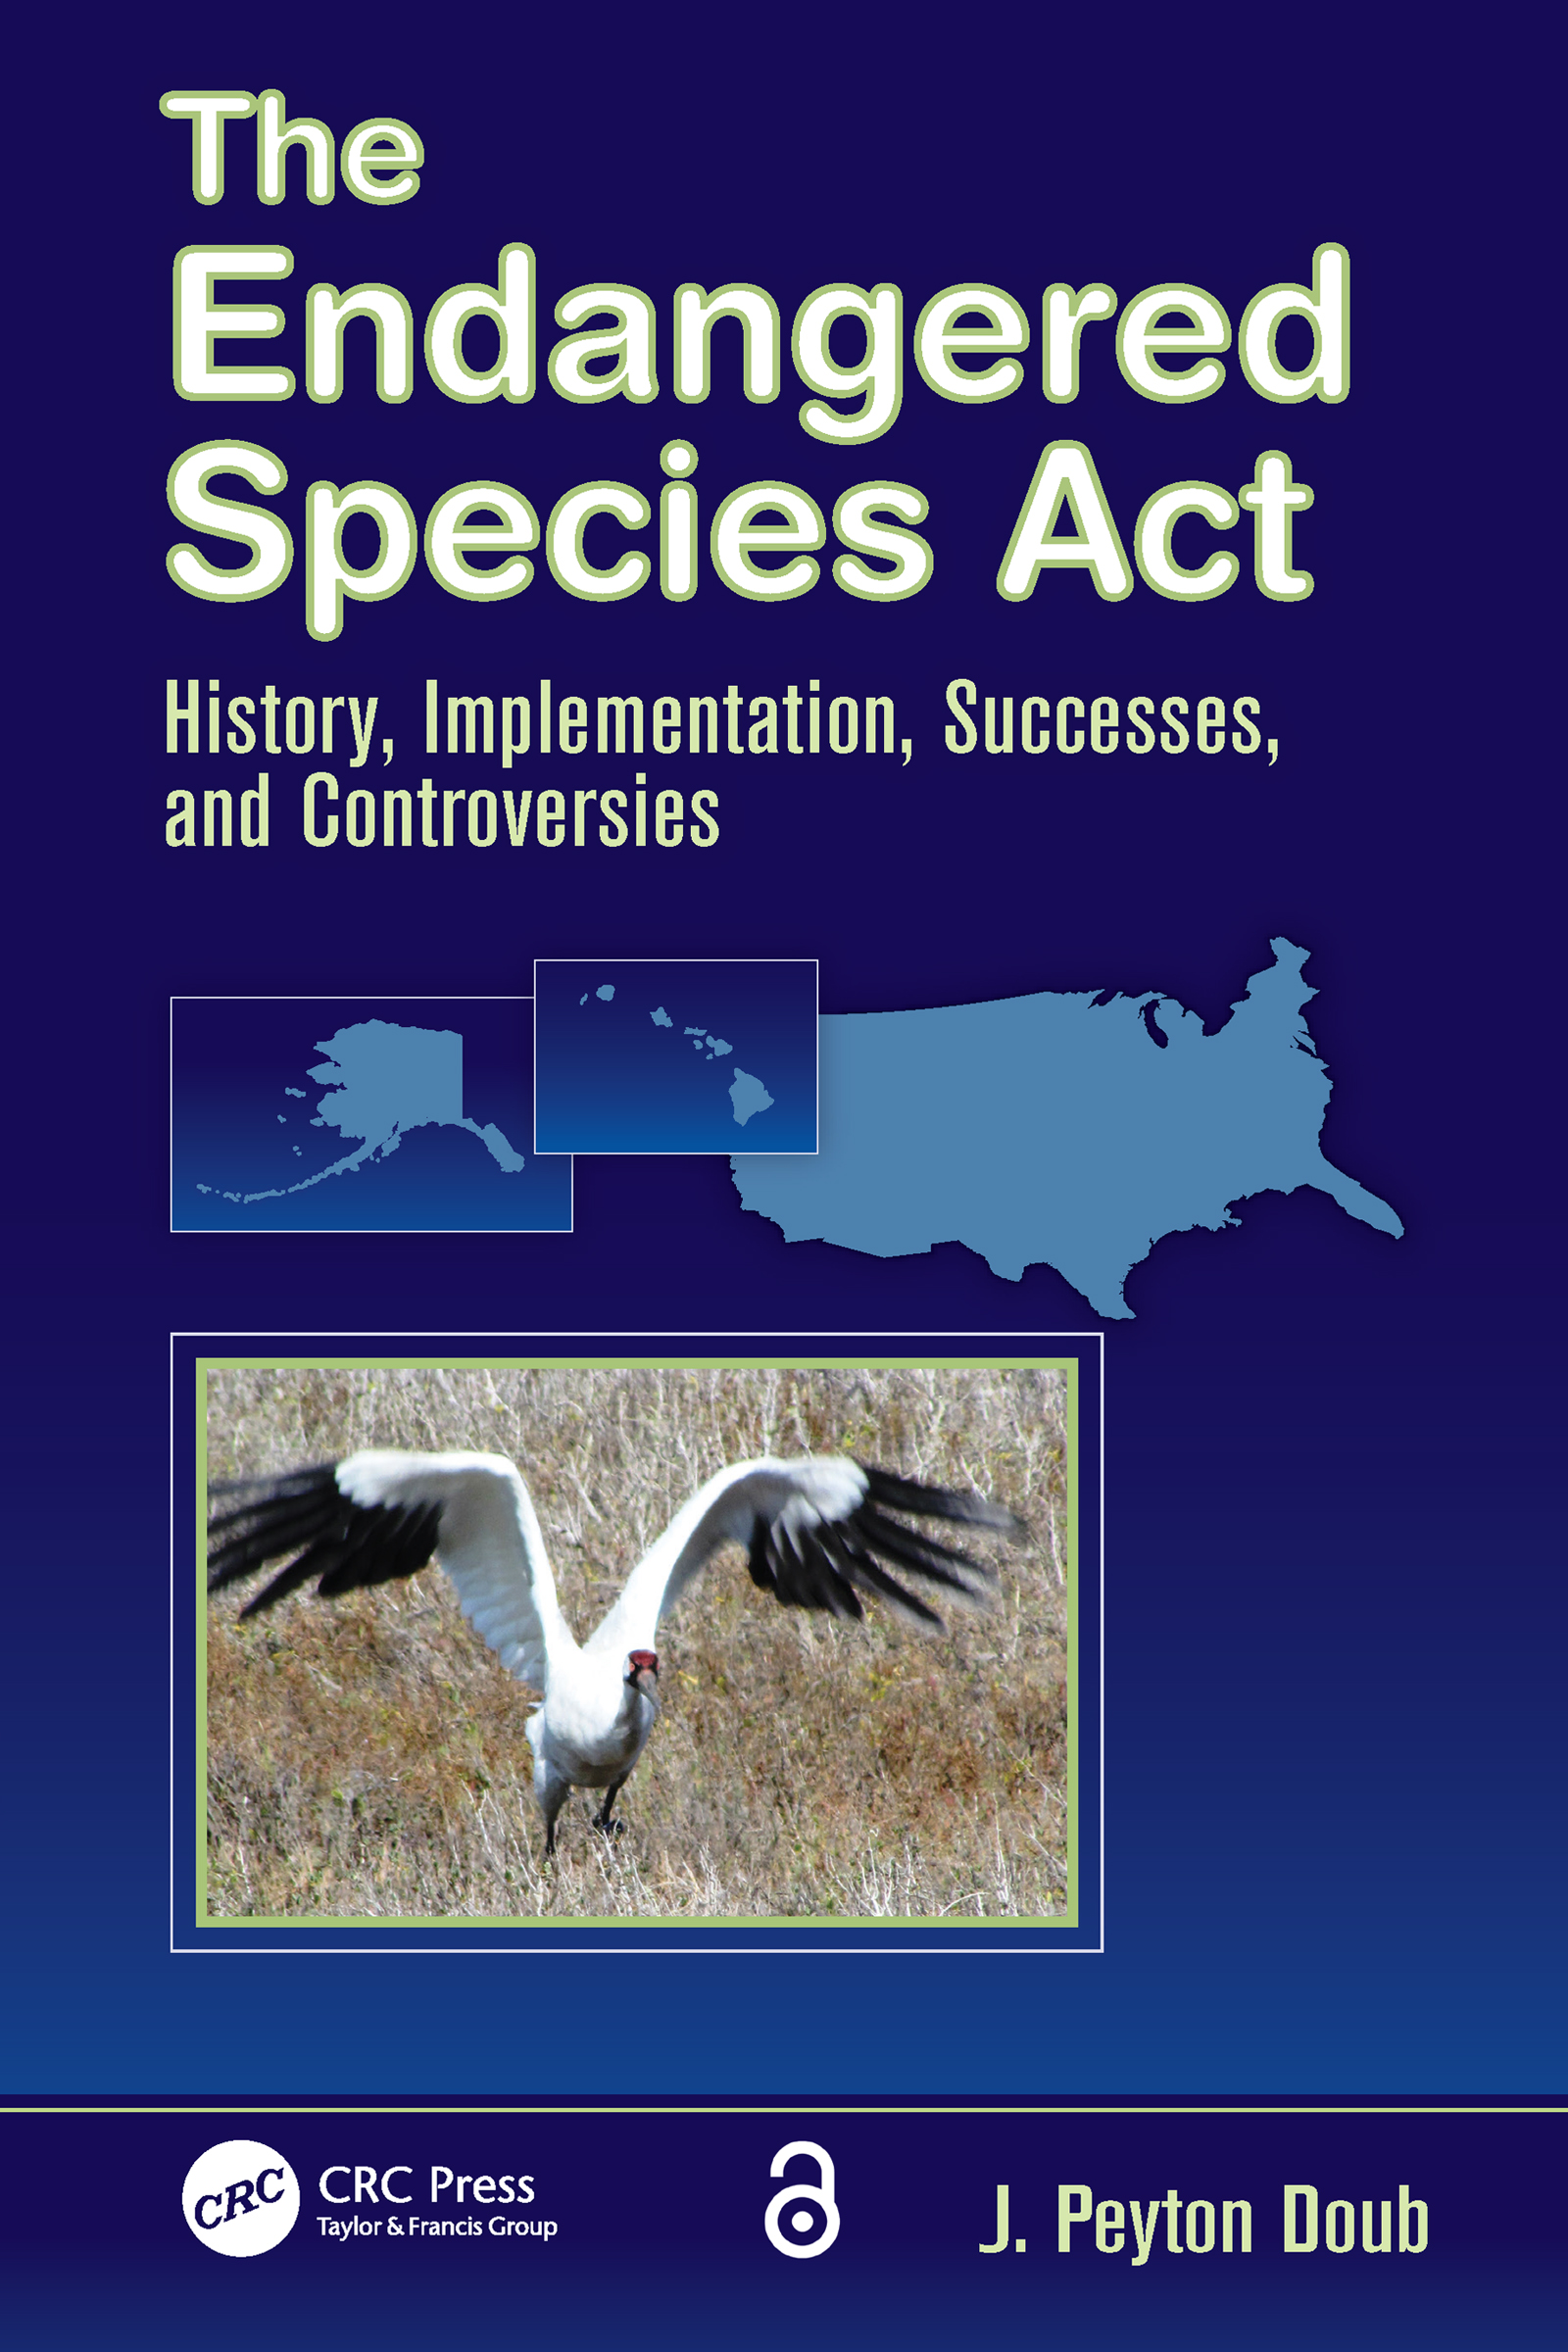 Roots of Endangered Species Conservation